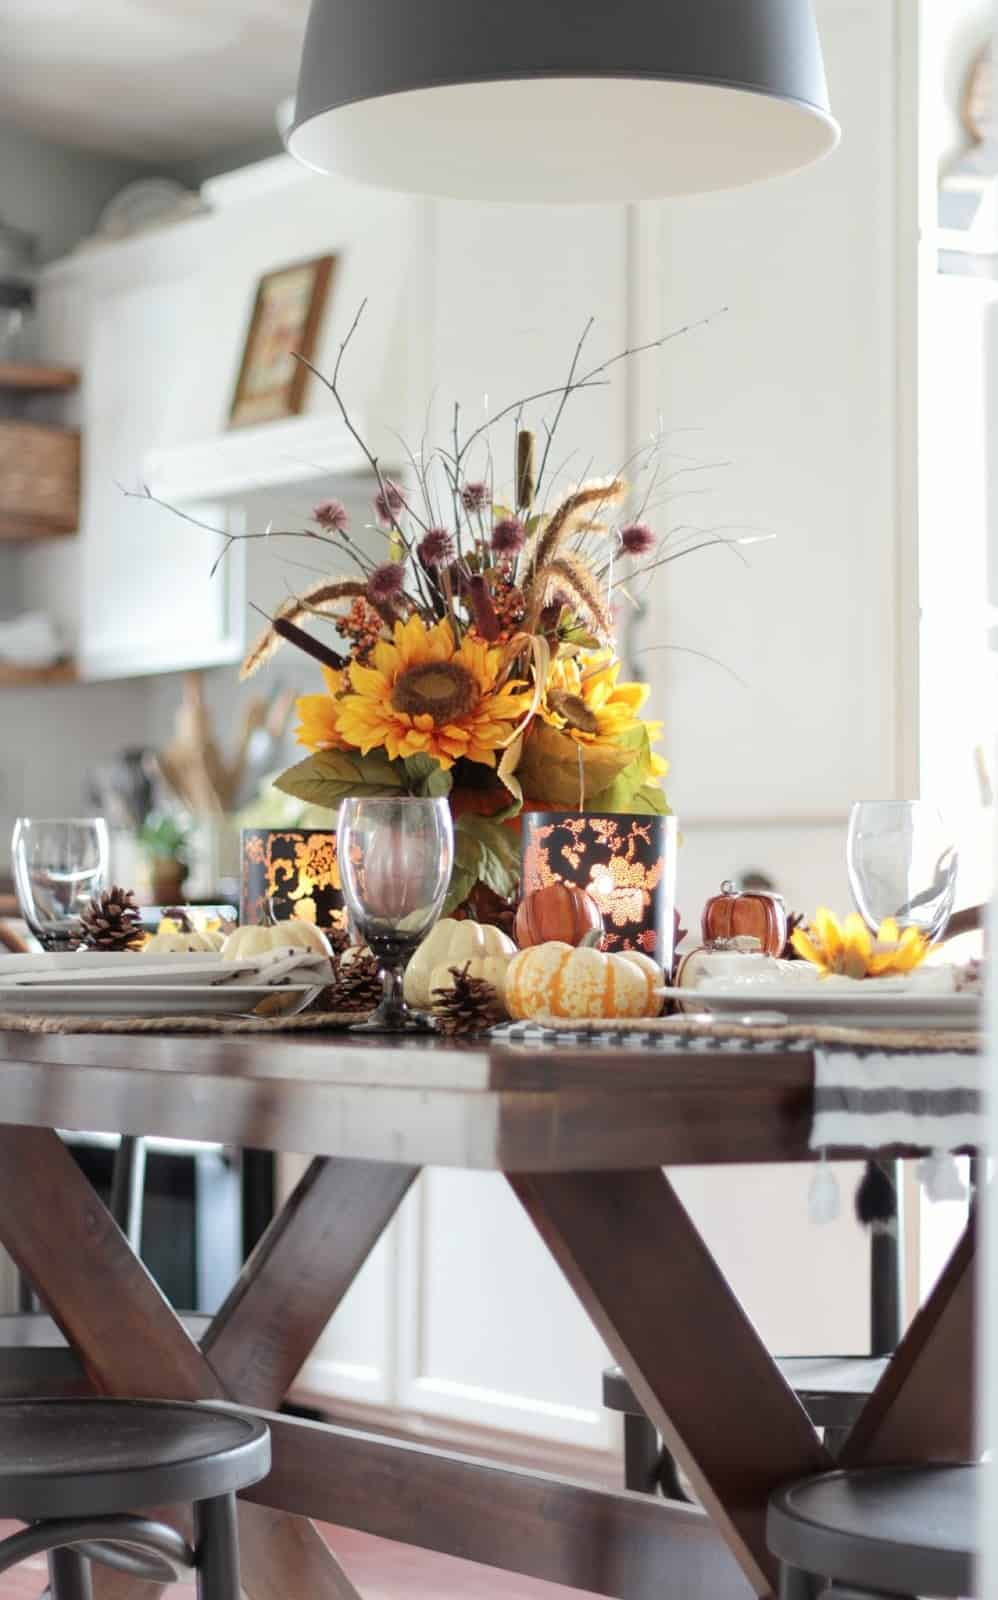 Fall table decor in traditional colors